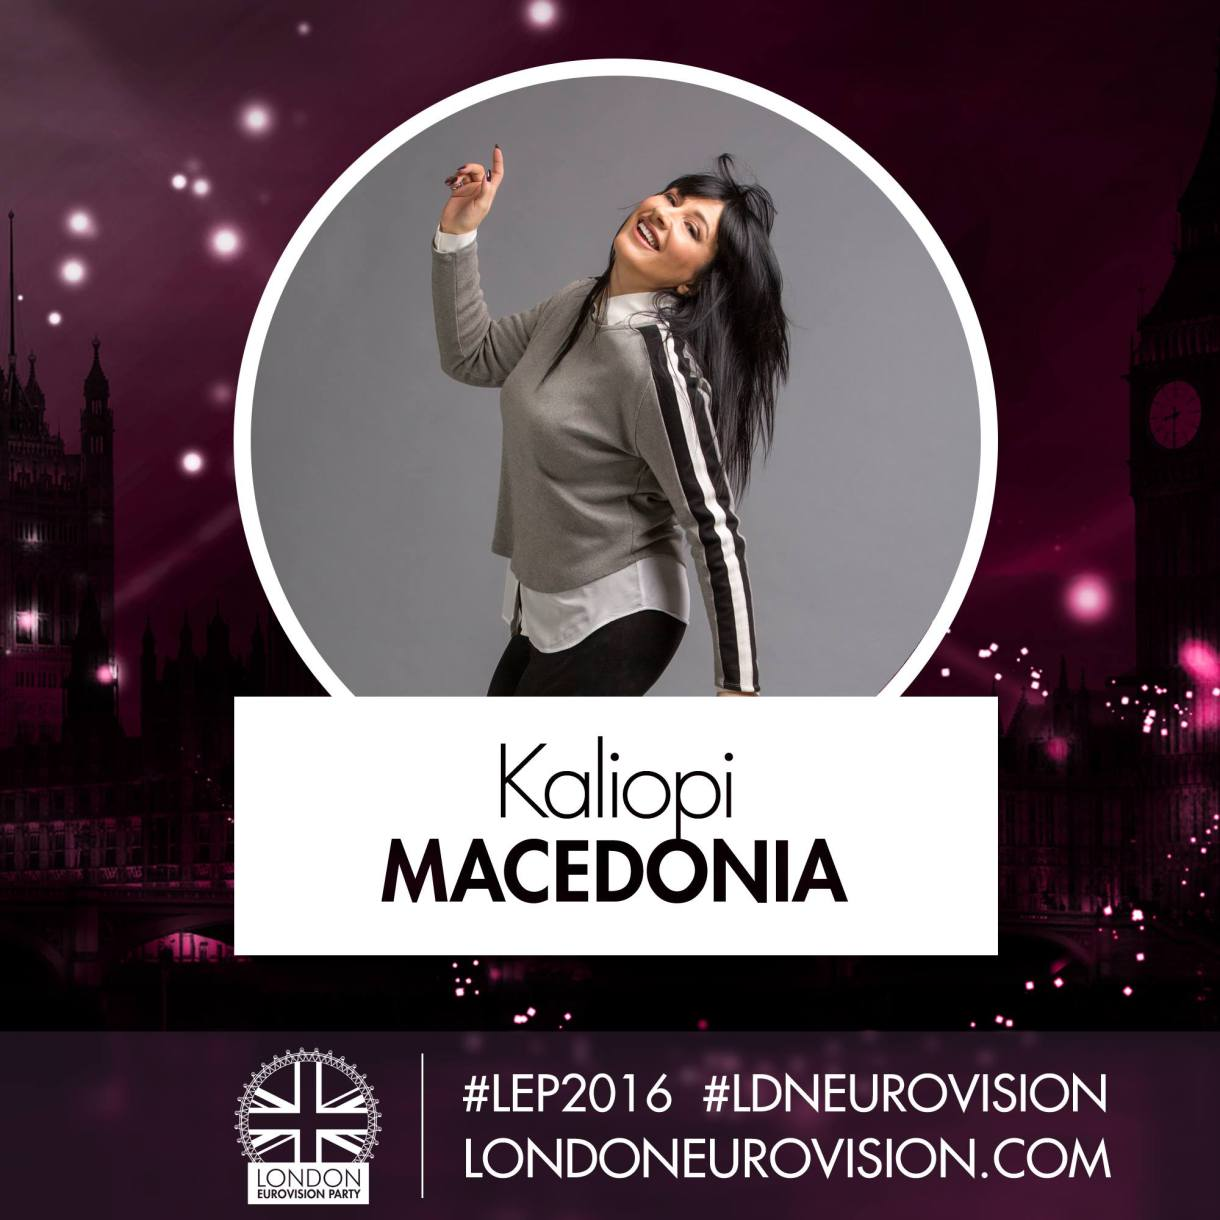 Kaliopi / Macedonia - London Eurovision Party 2016